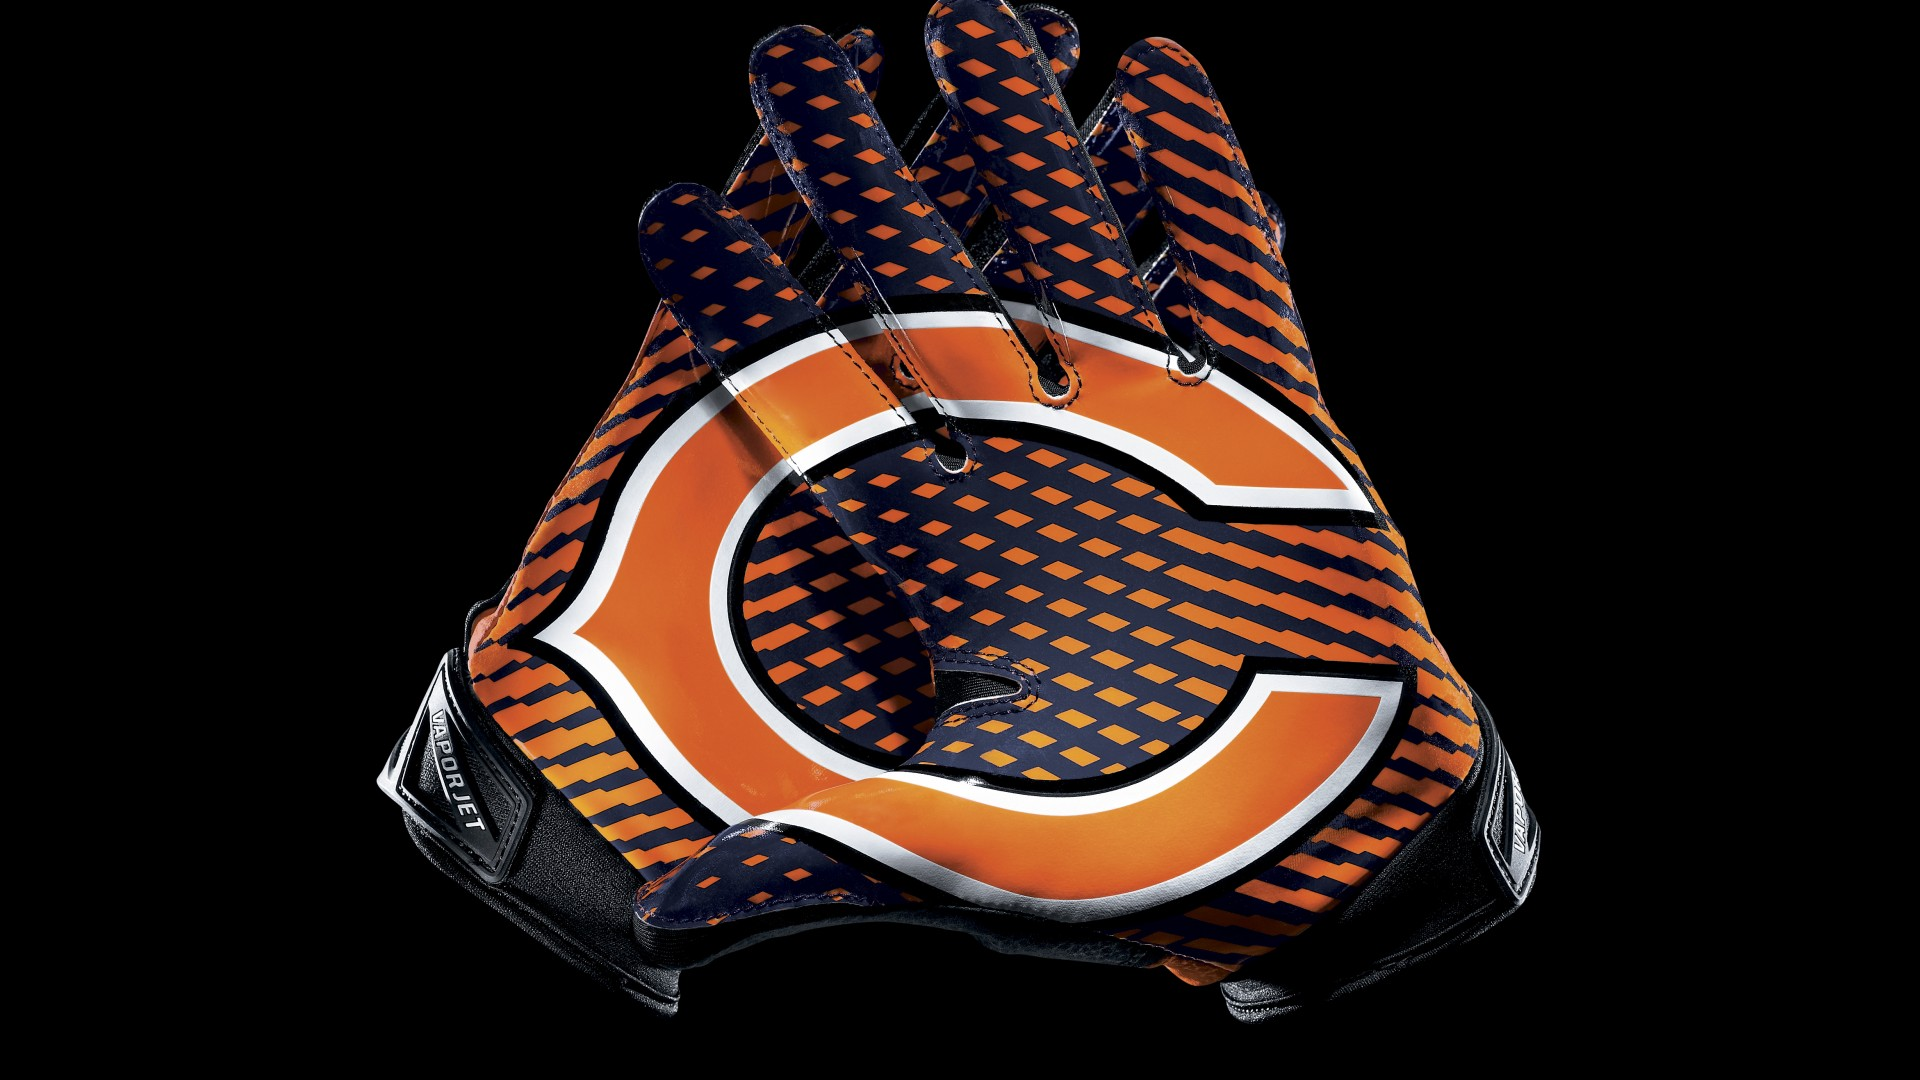 chicago bears gloves wallpaper 52902 54622 hd wallpapers in addition denver broncos uniforms coloring pages 1 on denver broncos uniforms coloring pages also denver broncos uniforms coloring pages 2 on denver broncos uniforms coloring pages in addition kansas city chiefs coloring pages on denver broncos uniforms coloring pages in addition denver broncos uniforms coloring pages 4 on denver broncos uniforms coloring pages